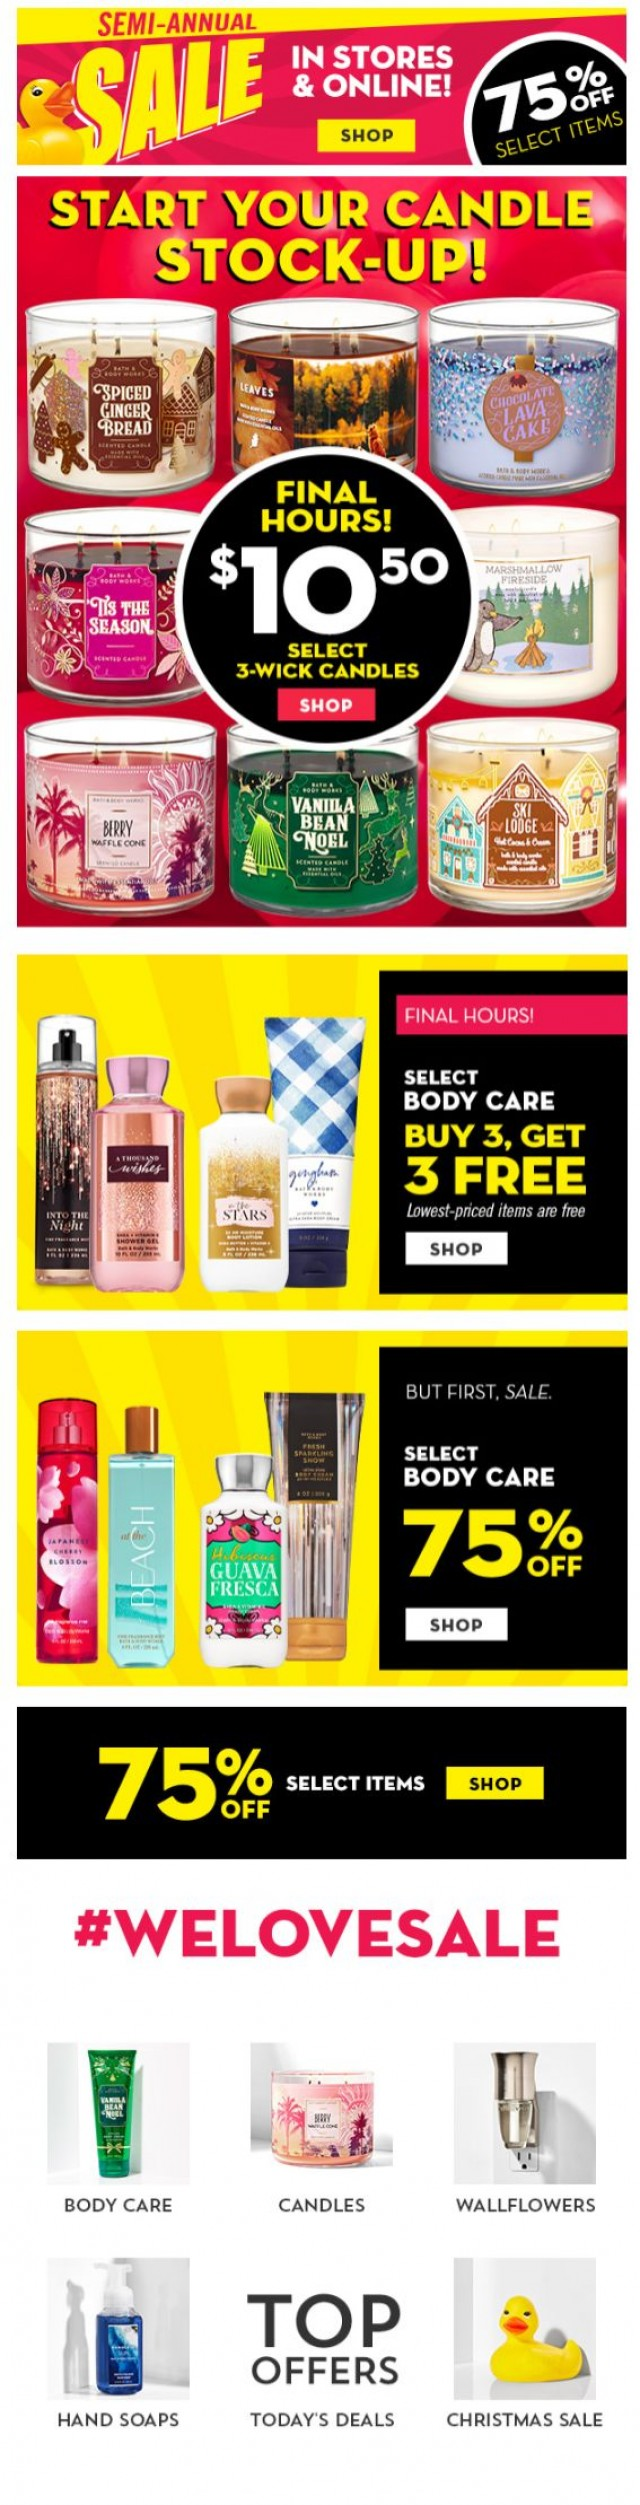 Coupon for: Bath & Body Works - get your $10.50 candles yet? final hours!